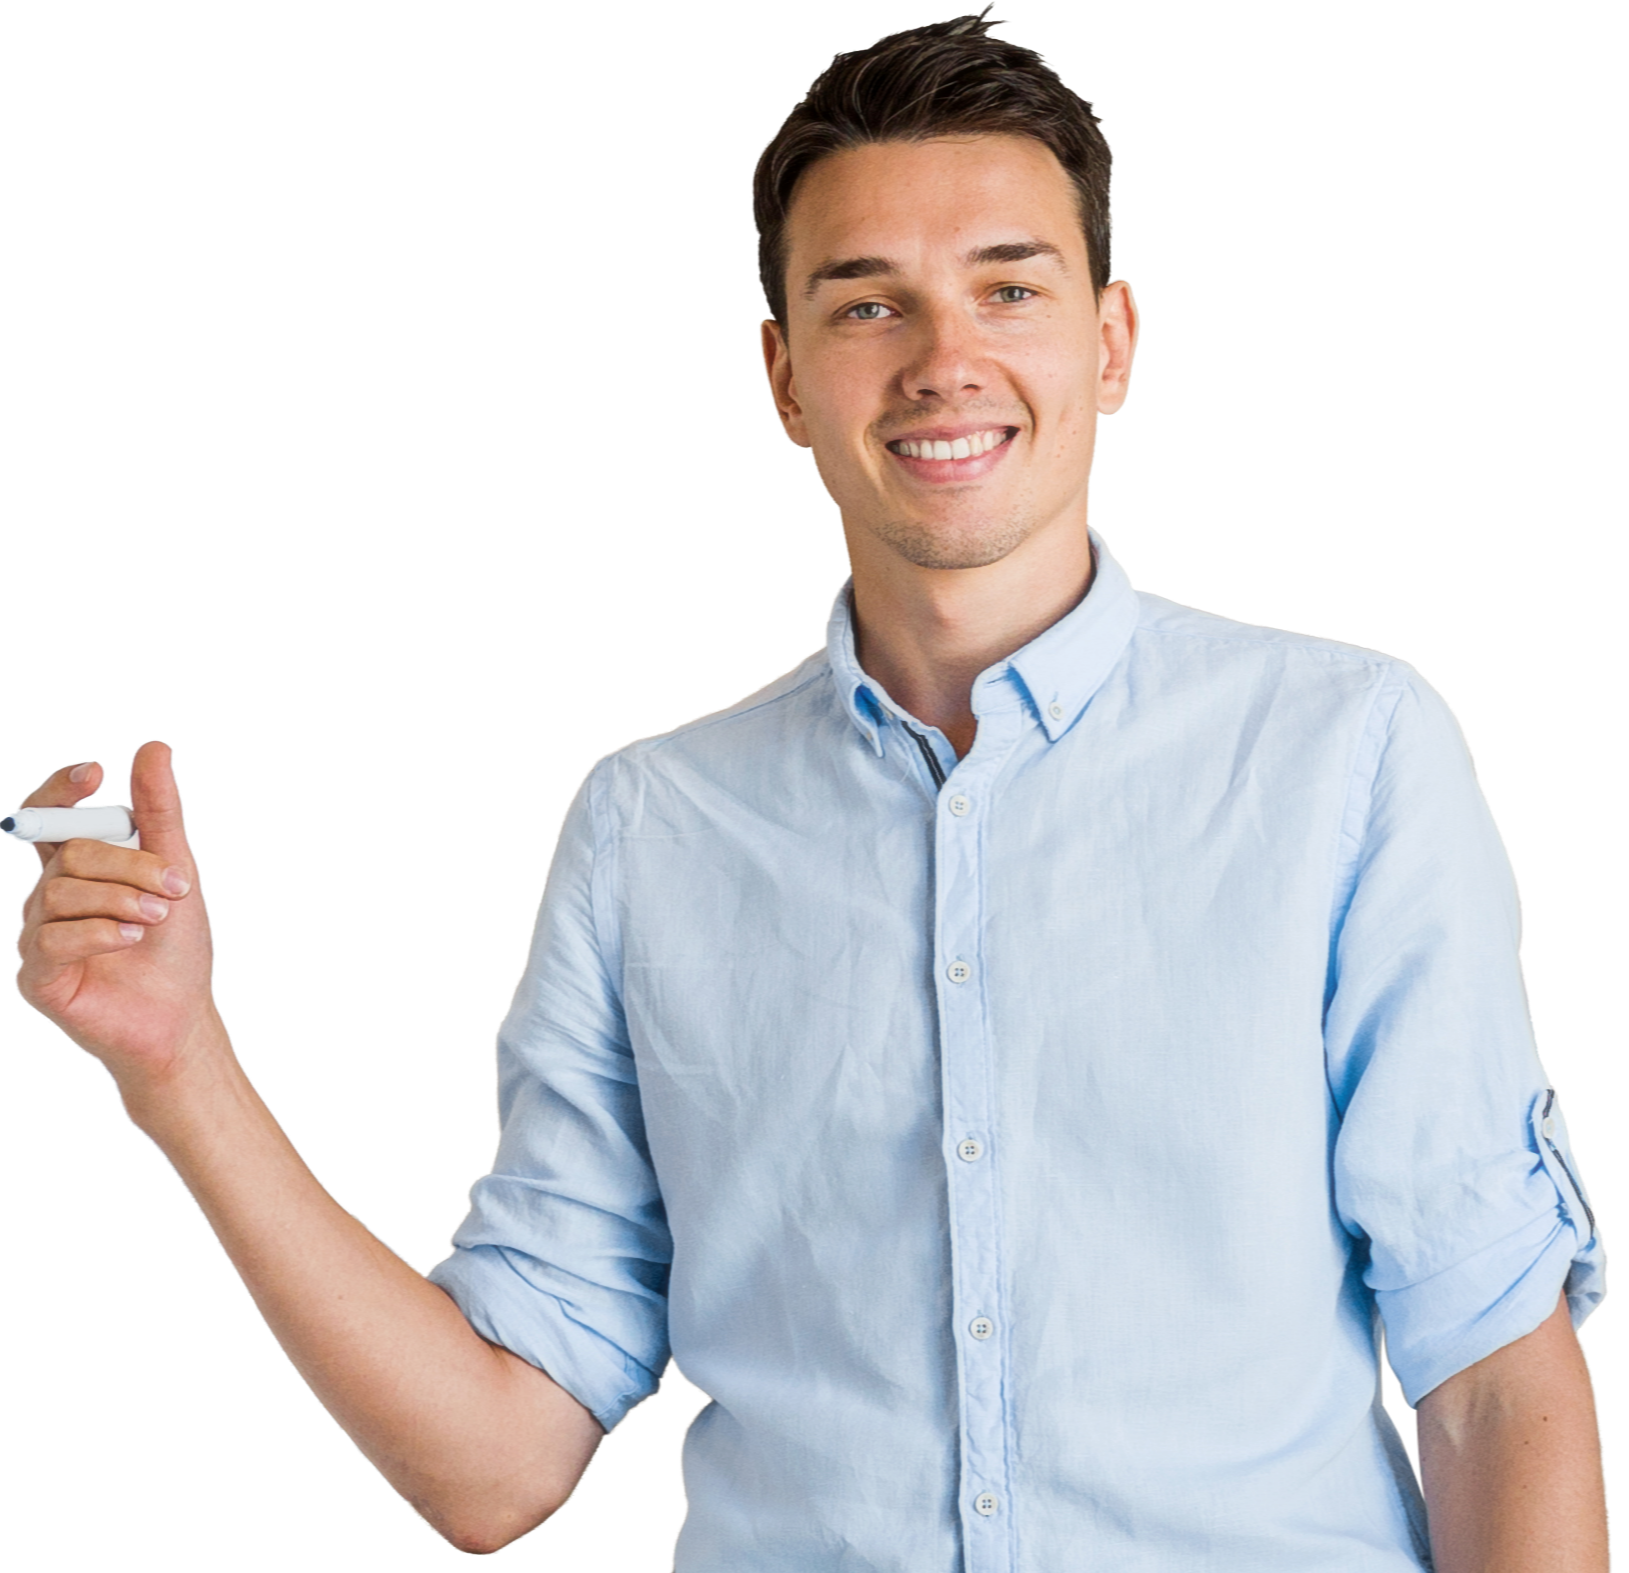 young-handsome-smiling-man-standing-empty-white-board-with-marker-1-1-1